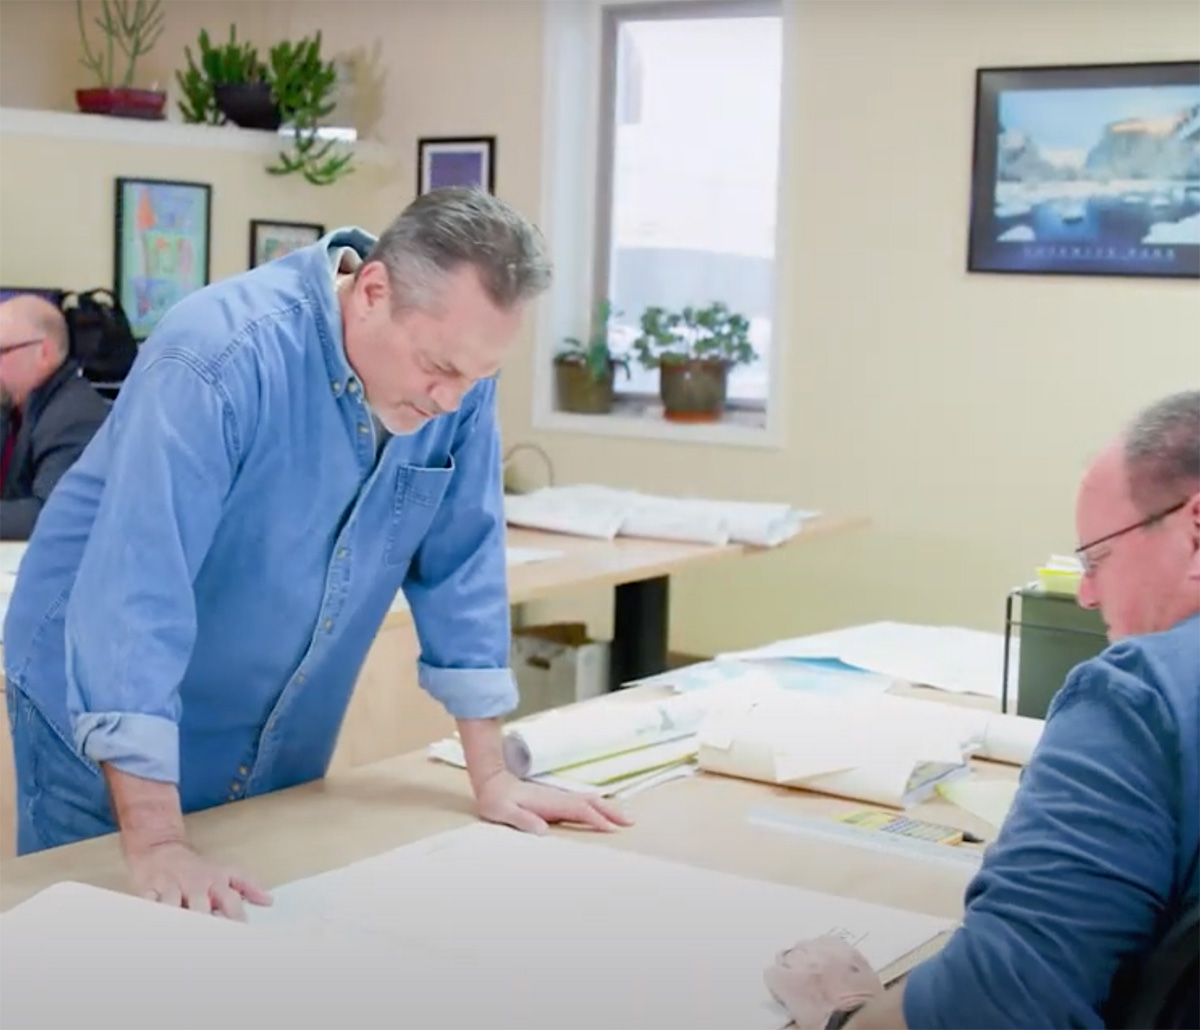 MiTek Resources Training Quality Control Management Services - Two men standing at desk looking over drawings